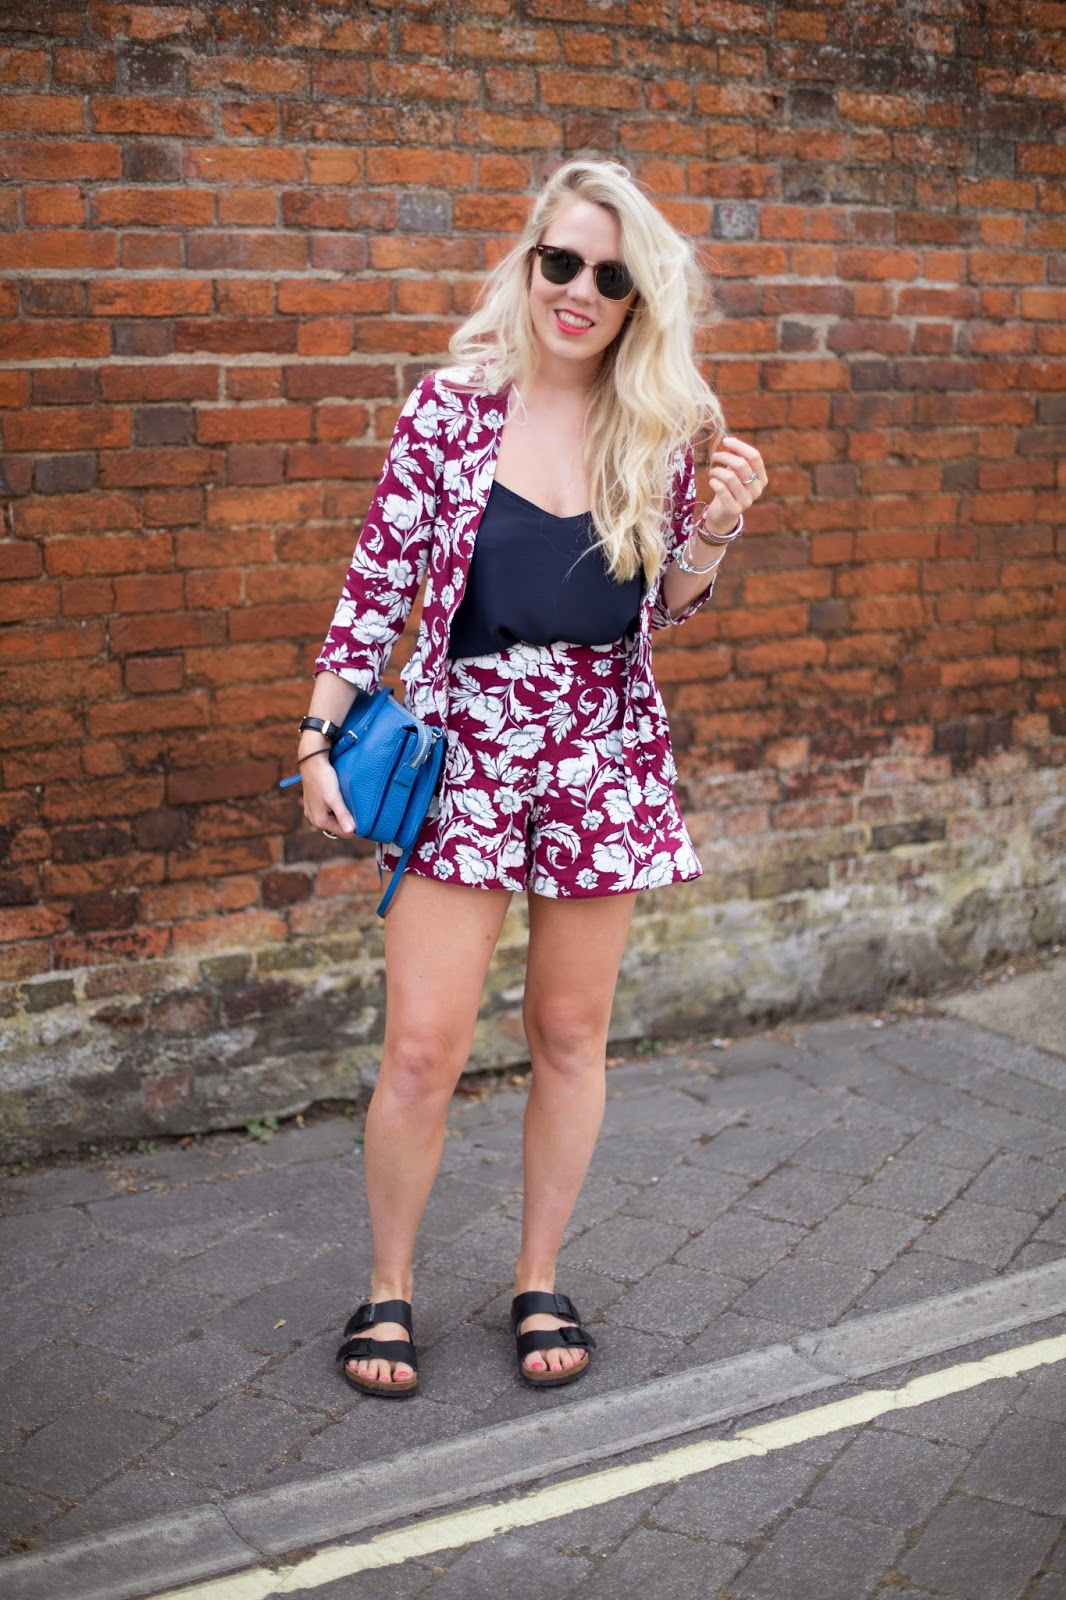 All Weather Tire >> ANOTHER CO-ORD - Mediamarmalade